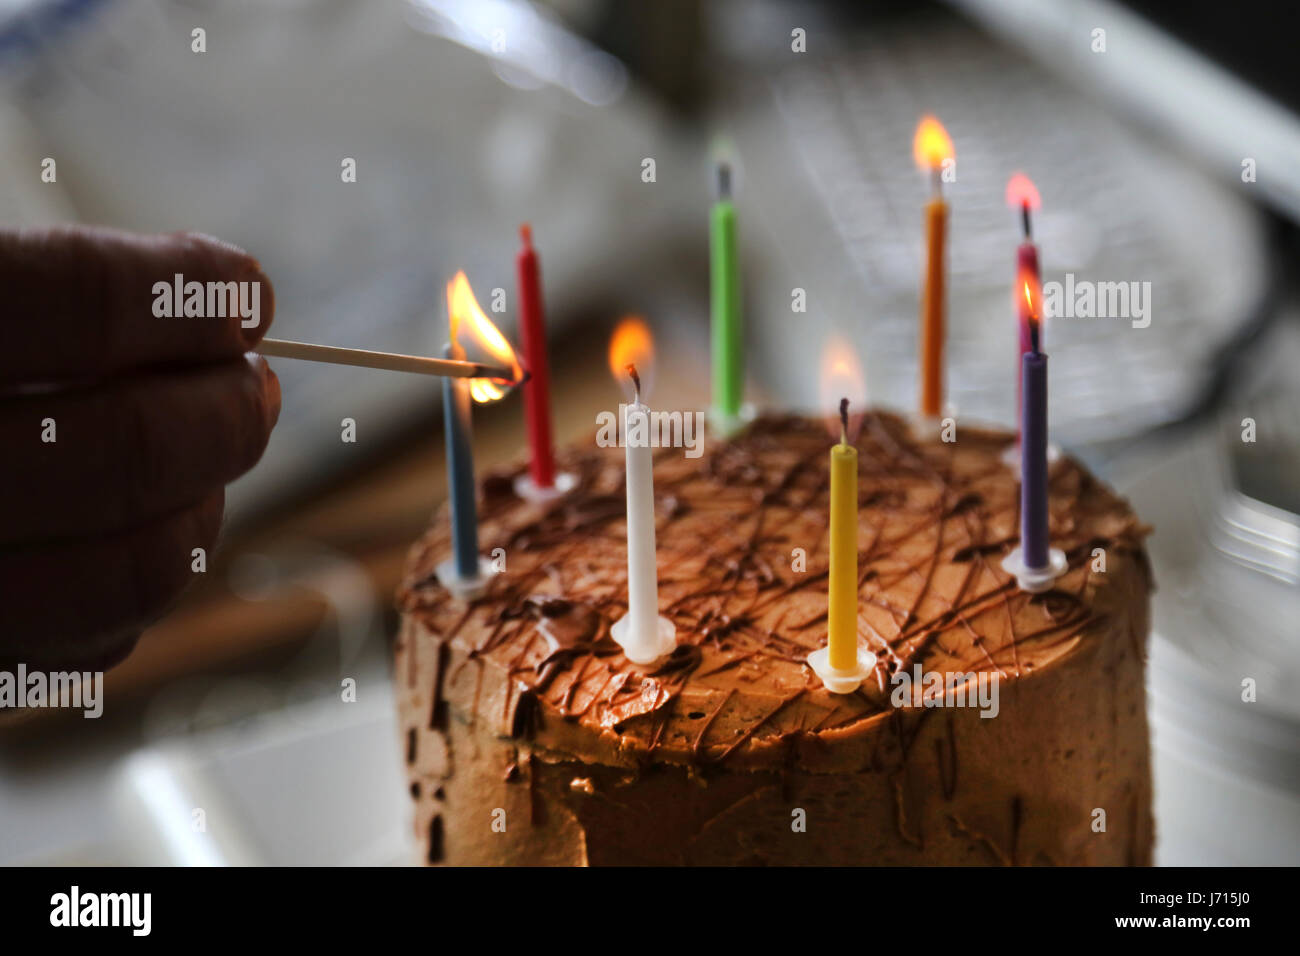 Lighting candles on chocolate birthday cake in office - Stock Image